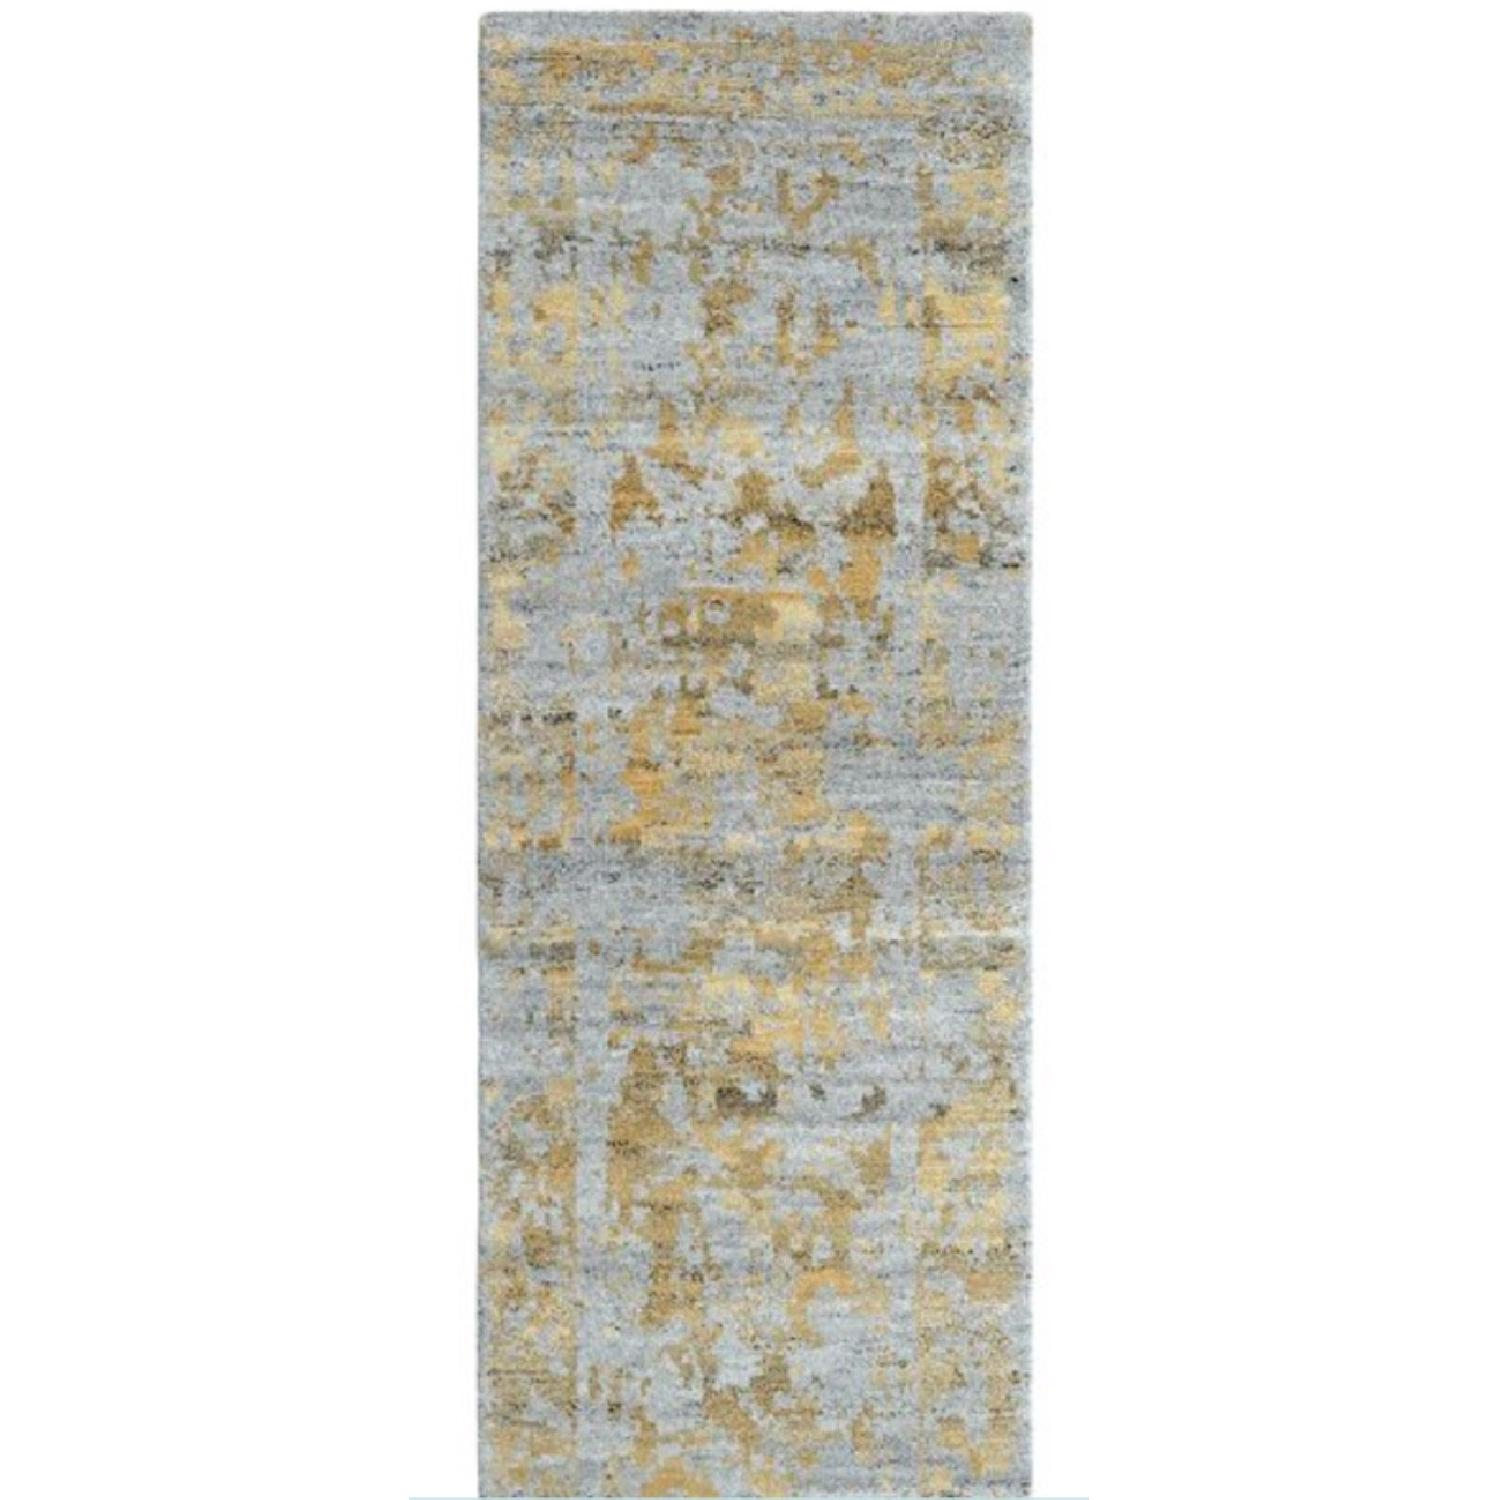 Company C Jasper Hand-Knotted Wool Gold/Gray Area Rug - image-1